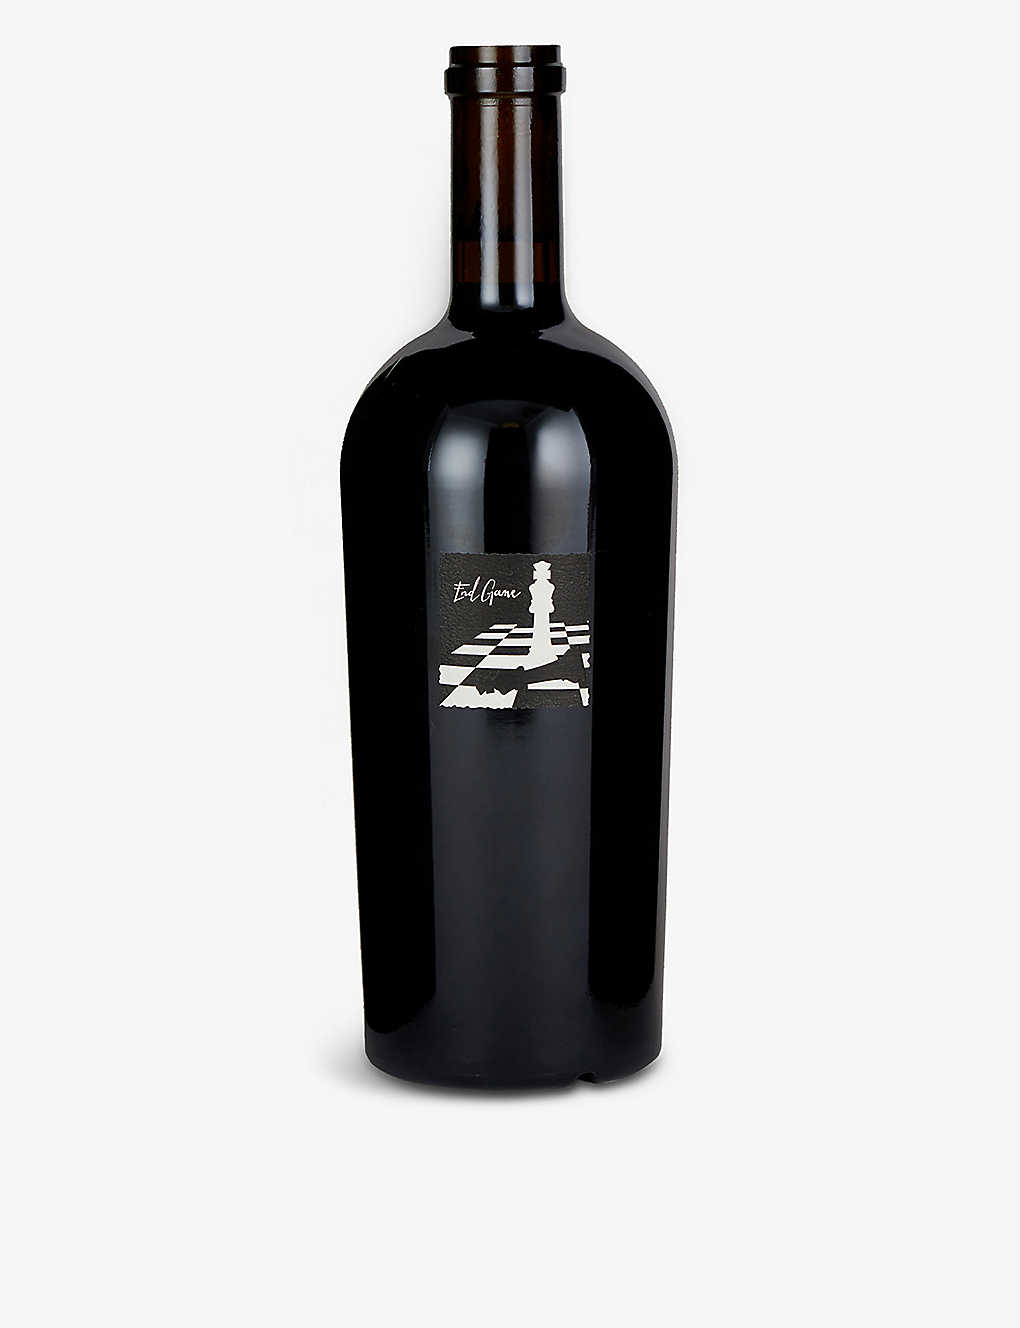 FINE WINES - Checkmate Endgame merlot 750ml | Selfridges.com